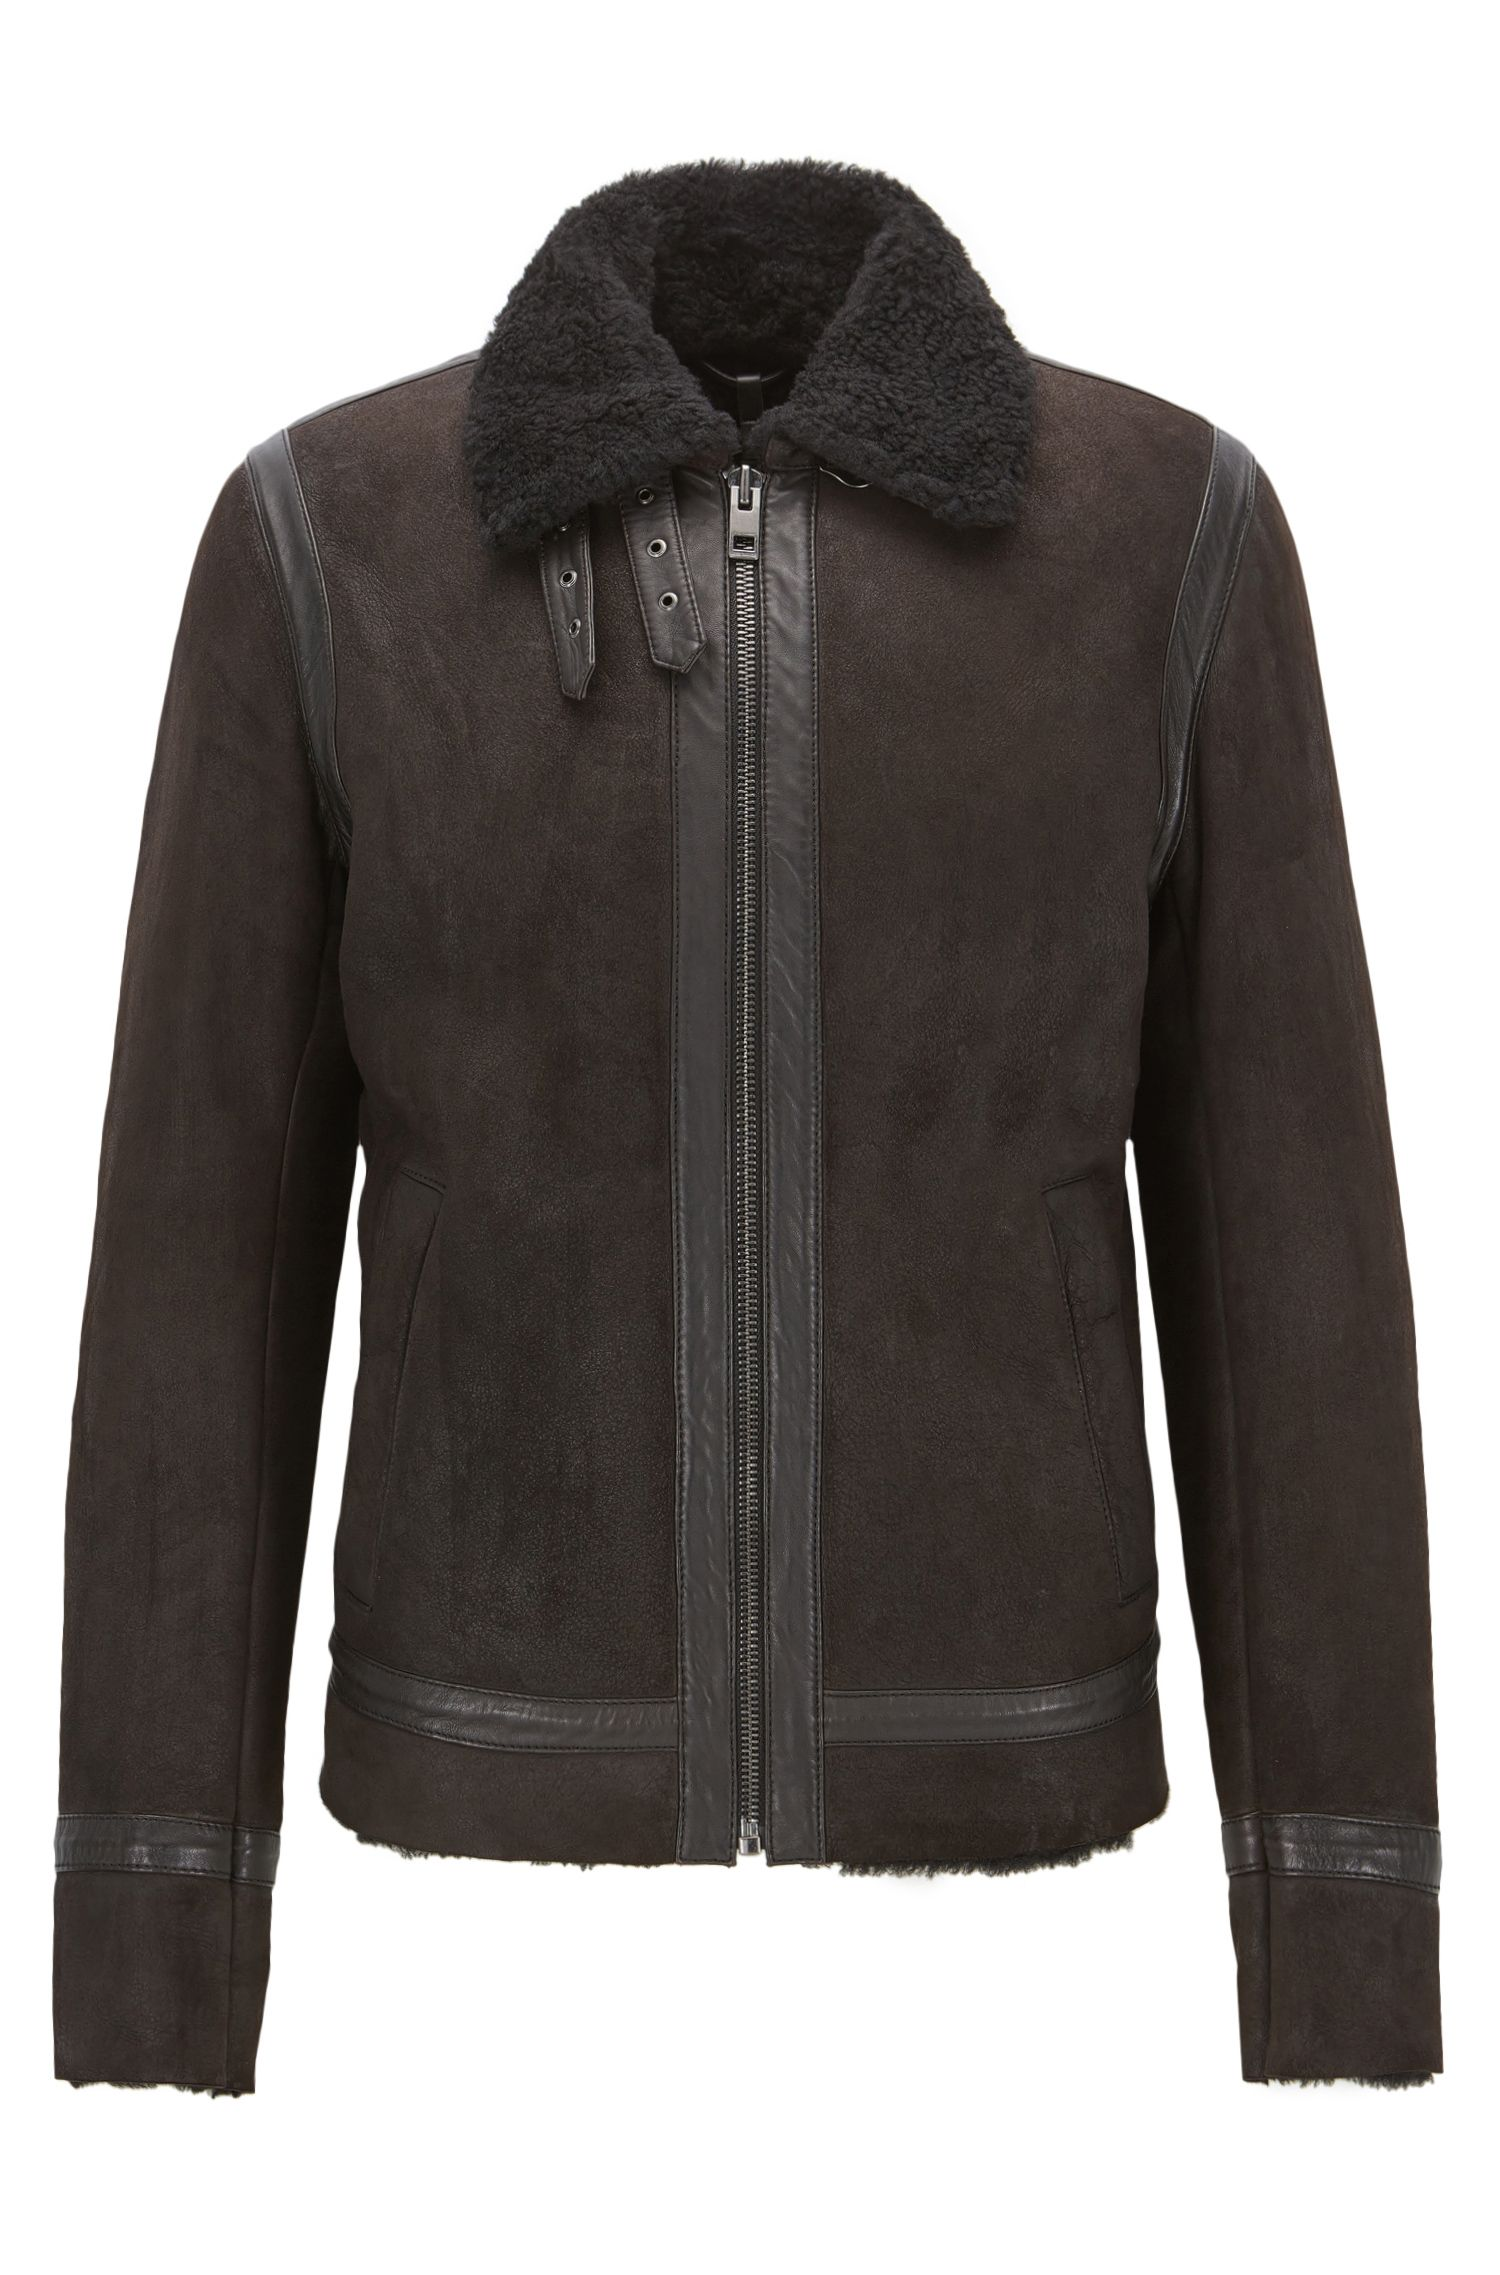 Shearling Suede Jacket | Jearling